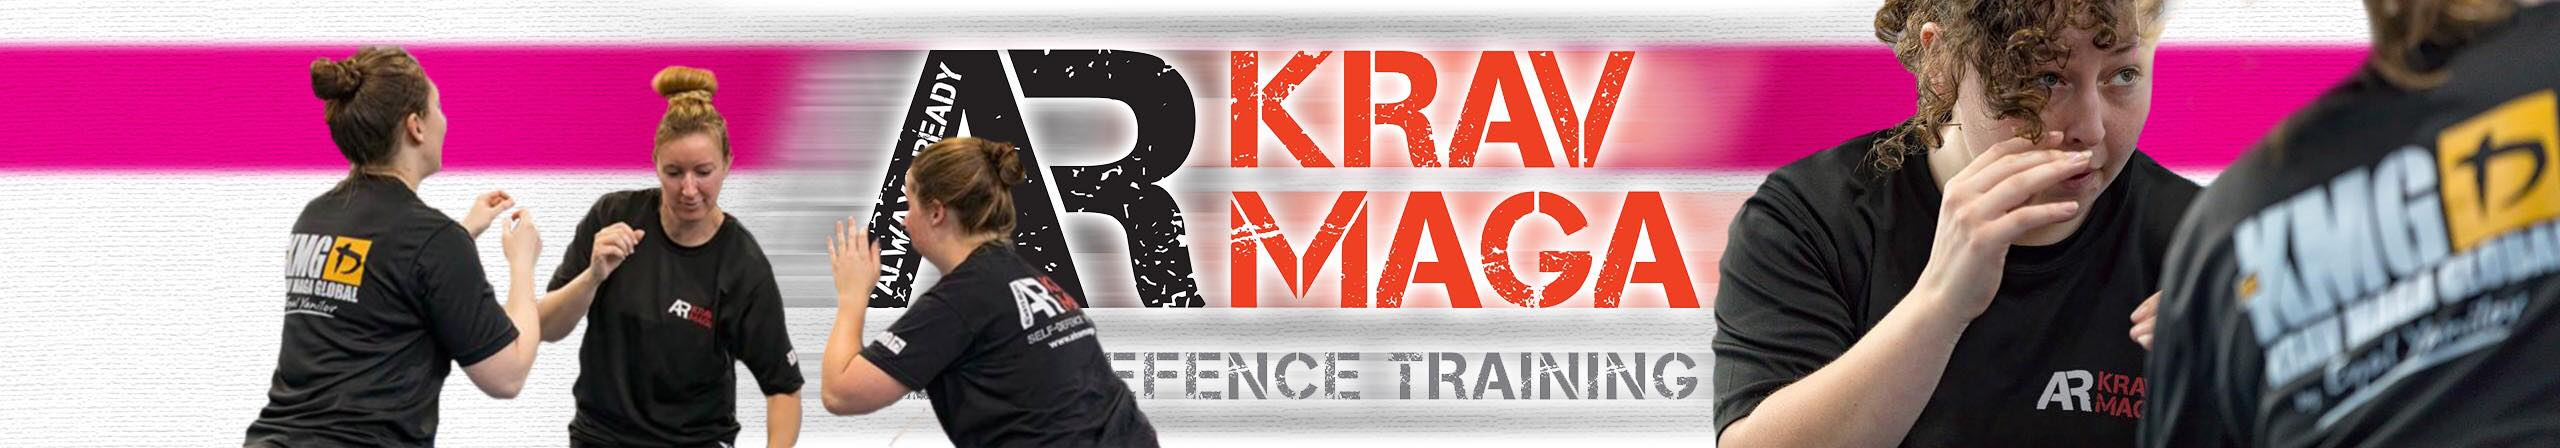 AR Krav Maga Women Only Trial Classes